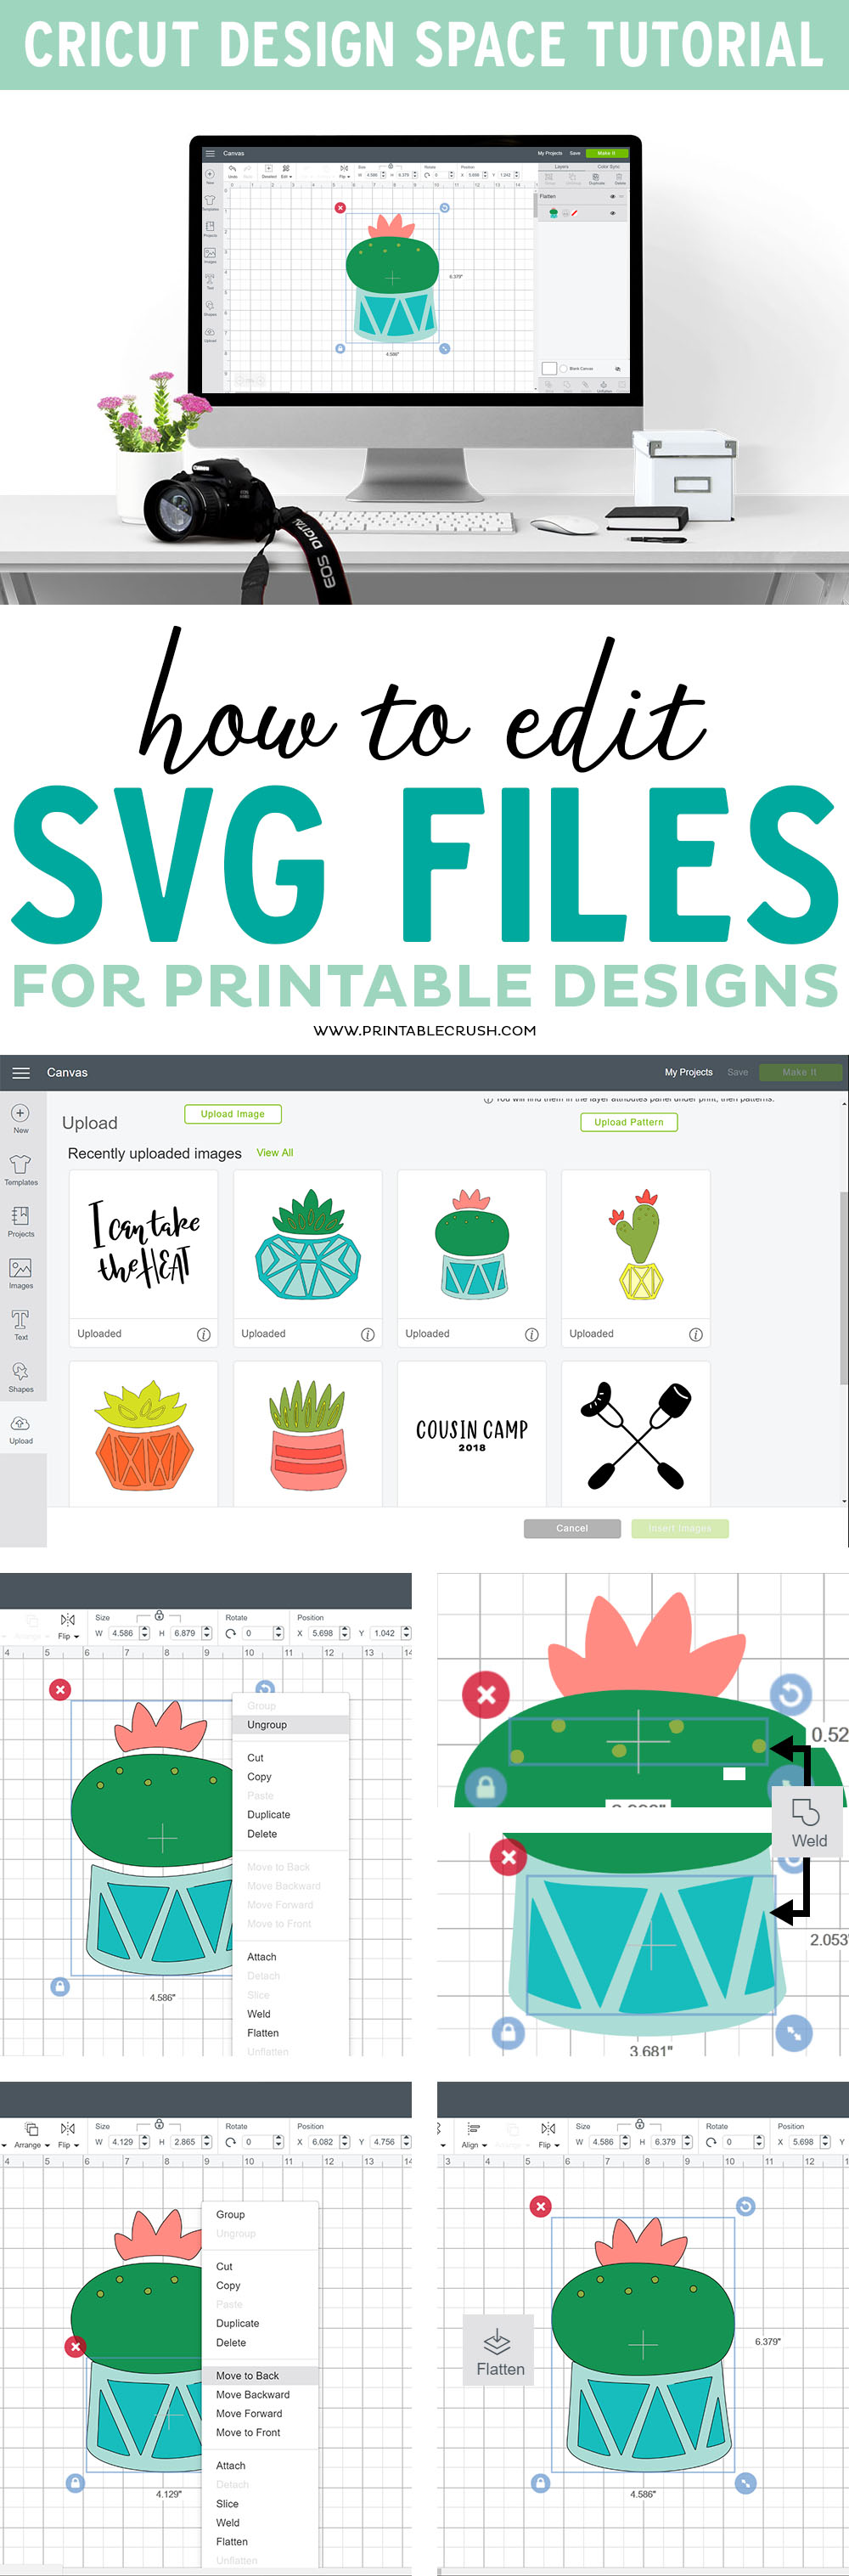 How to Edit SVG Files to use for Printable Designs in Cricut Design Space!